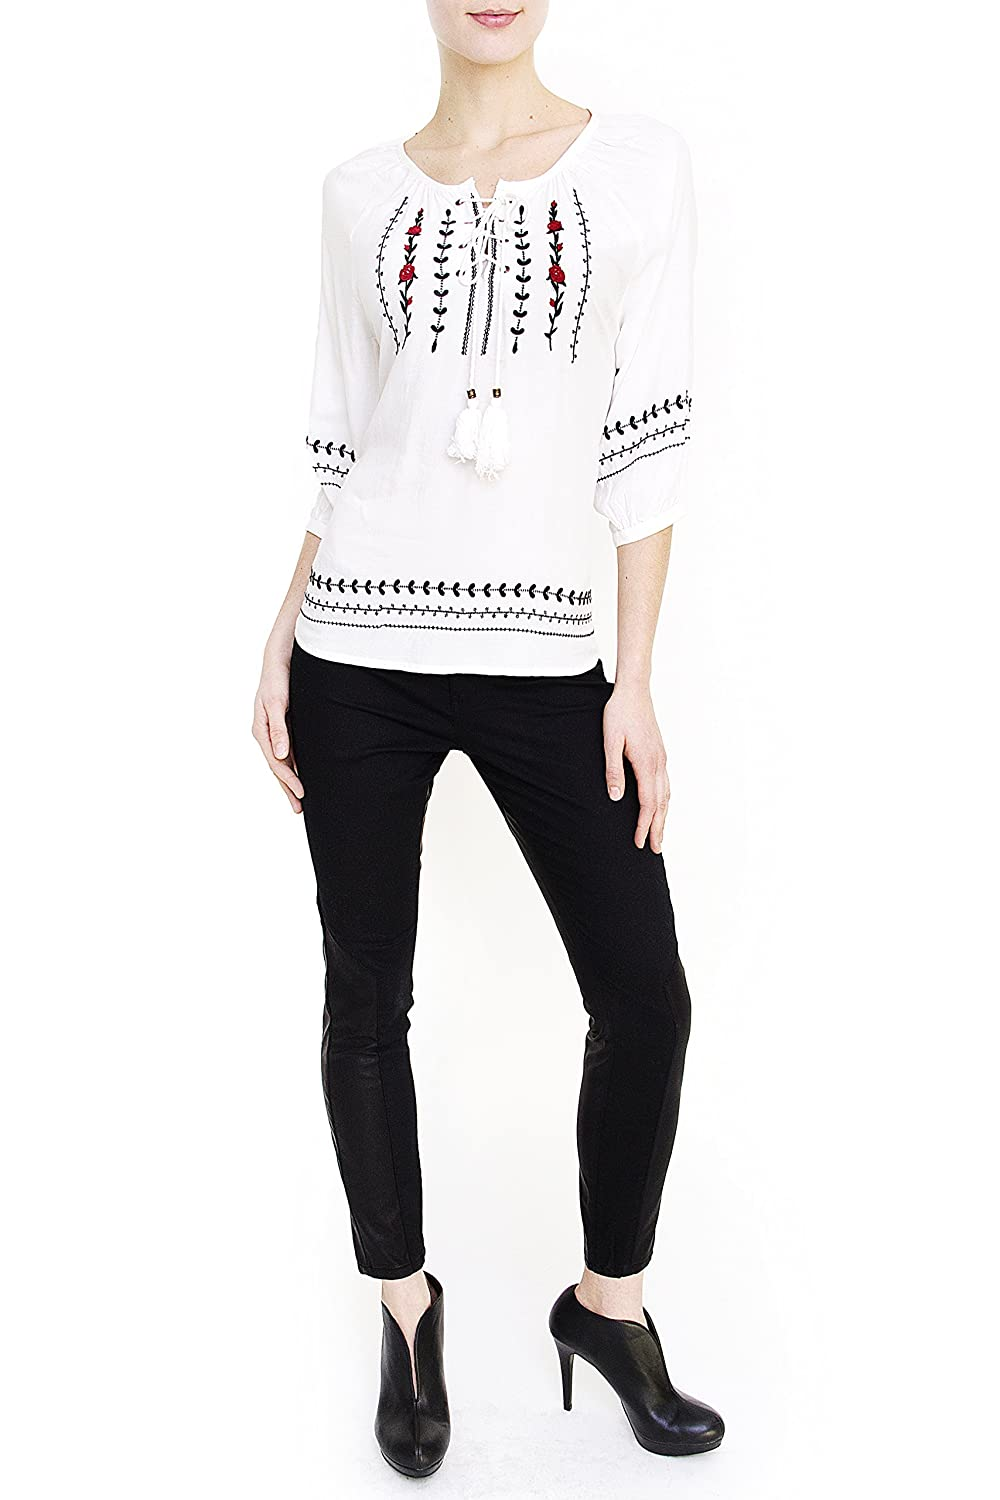 Vanilla Star Jeans - Juniors - Embroidered Peasant Top - White (V1282-F010)